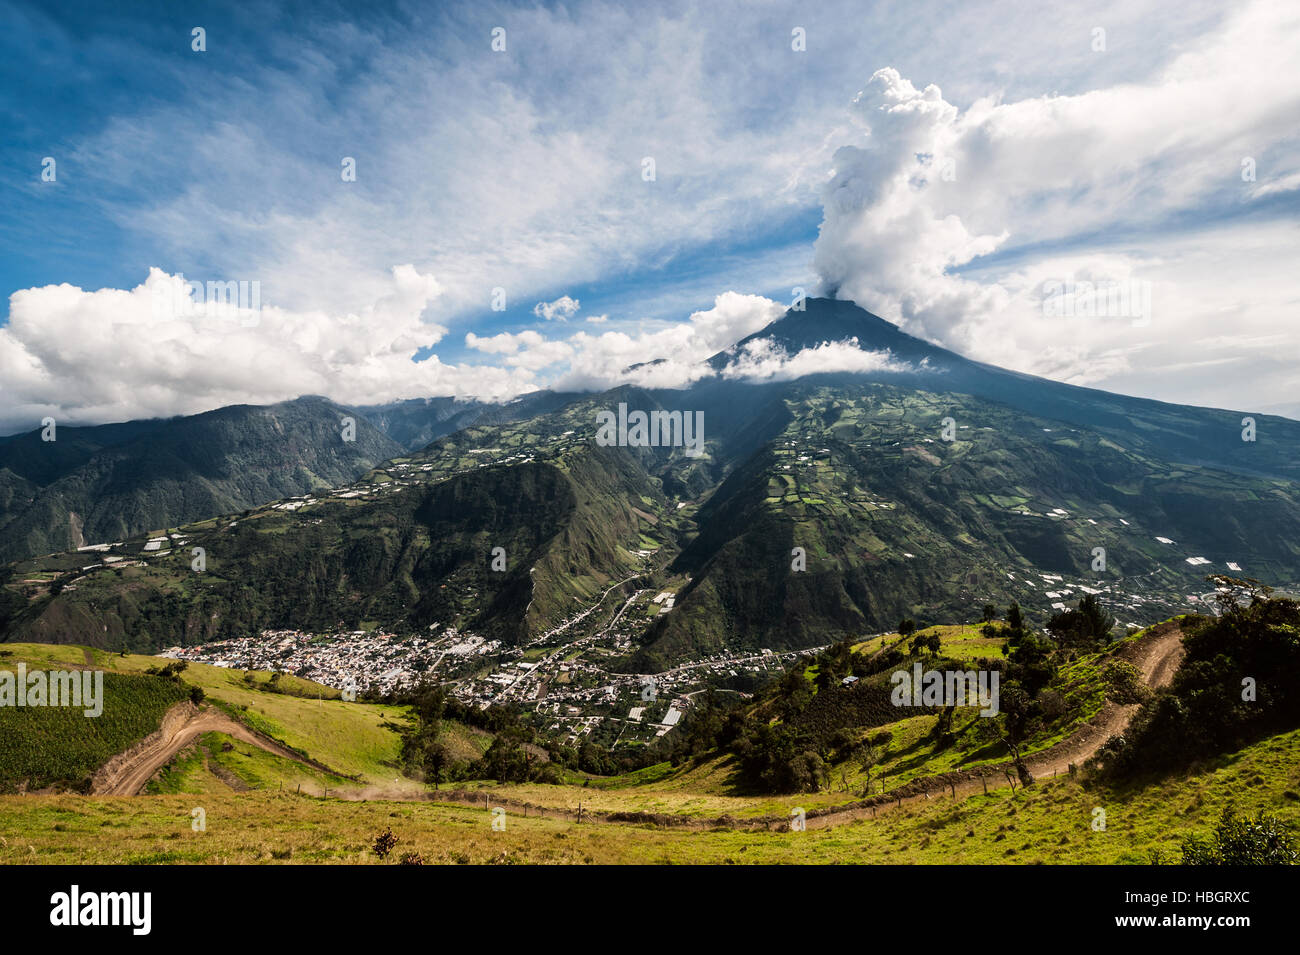 Eruption of a volcano Tungurahua, Cordillera Occidental of the Andes of central Ecuador, South America - Stock Image